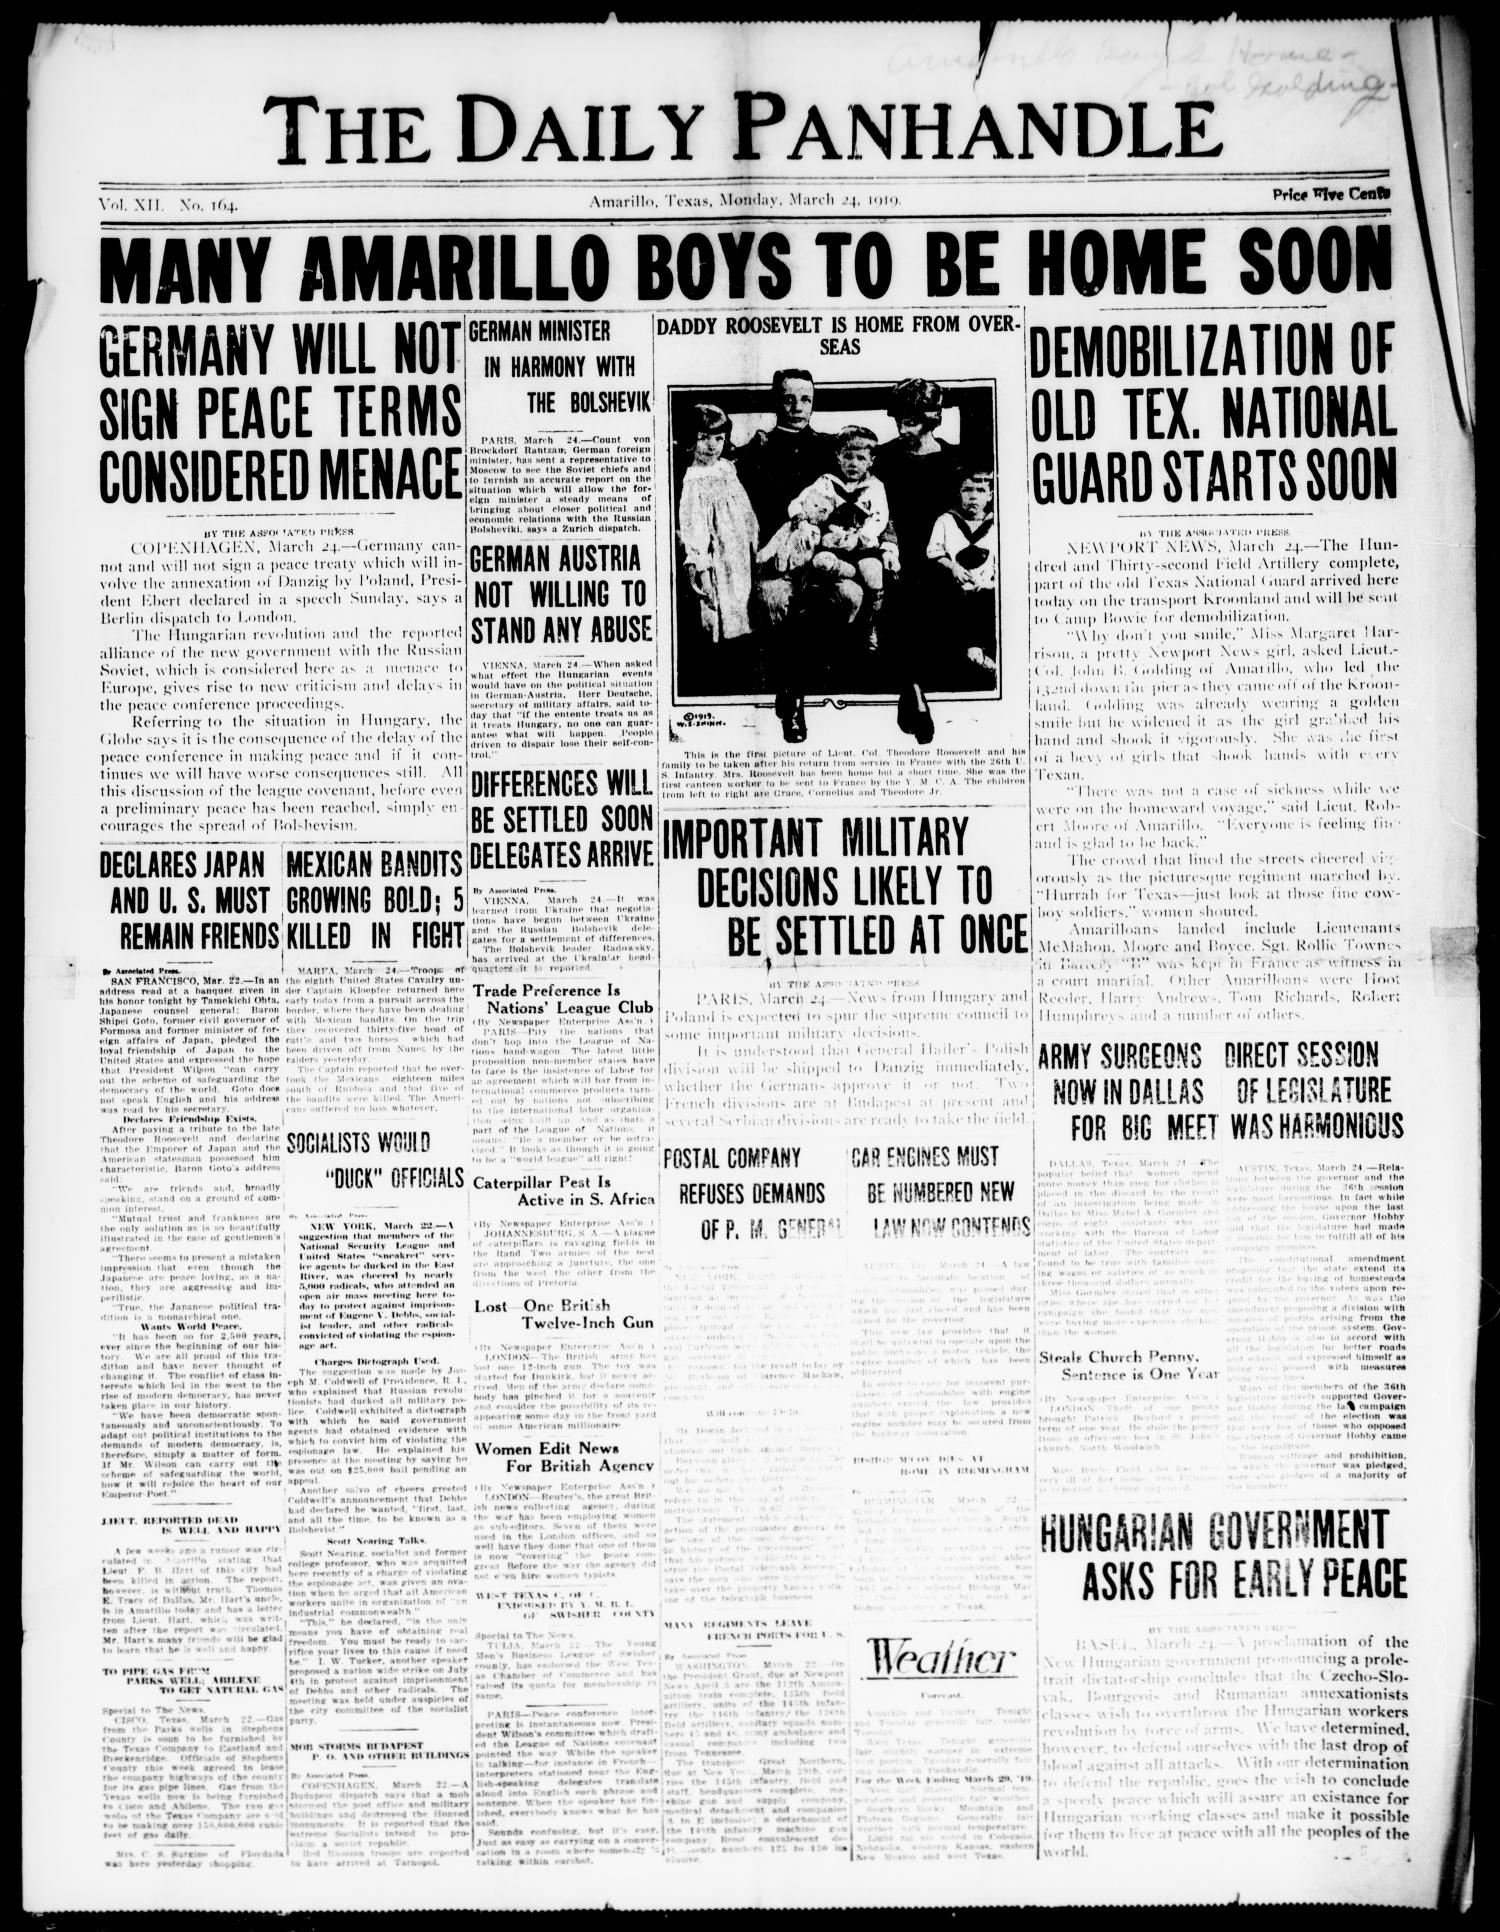 The Daily Panhandle. (Amarillo, Texas), Vol. 12, No. 164, Ed. 1 Monday, March 24, 1919                                                                                                      [Sequence #]: 1 of 4